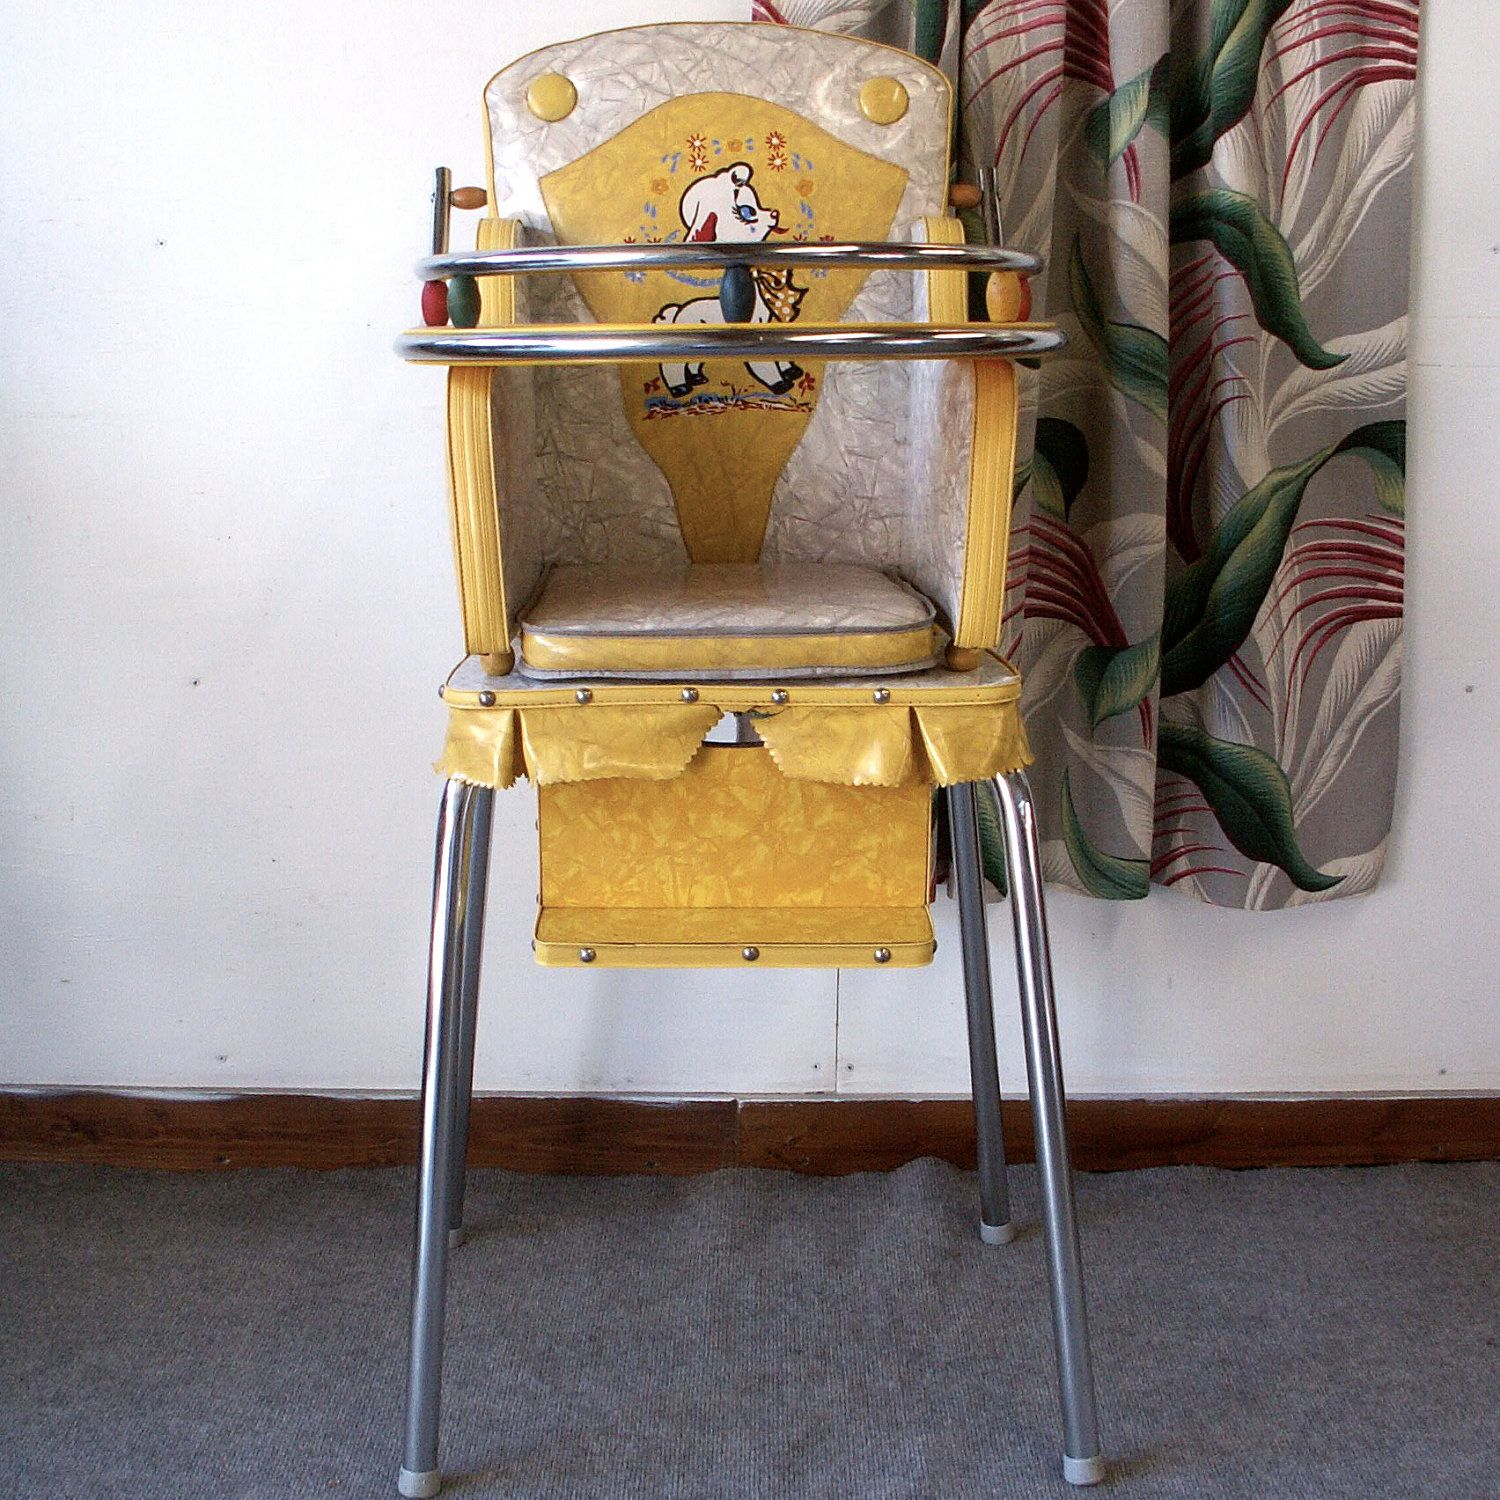 Vintage Baby High Chair Vintage High Chairs Vintage